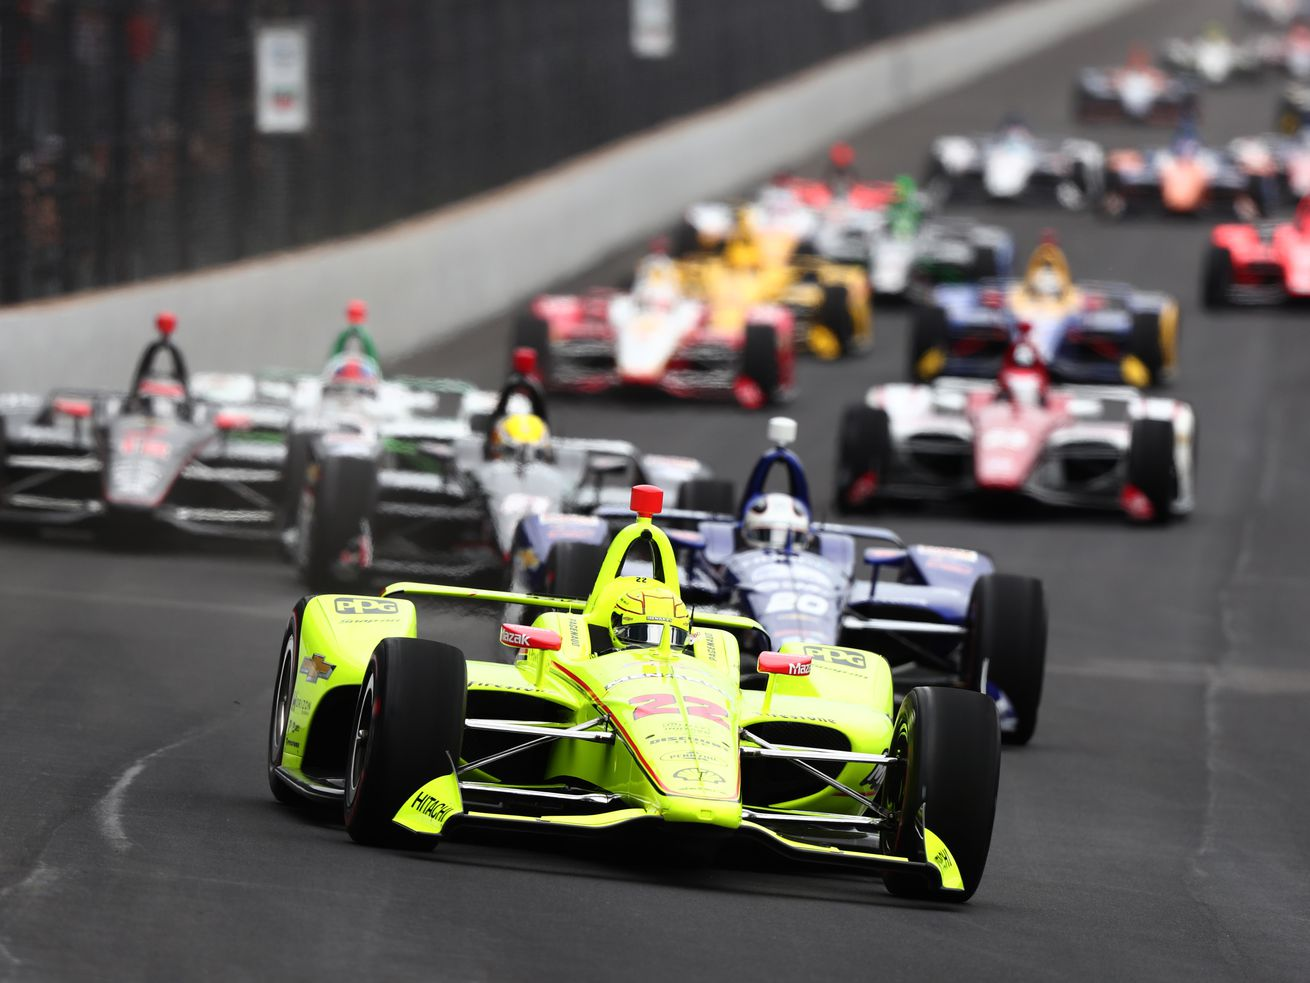 Simon Pagenaud of France, driver of the #22 Team Penske Chevrolet, leads the field at the start of the 103rd Indianapolis 500.